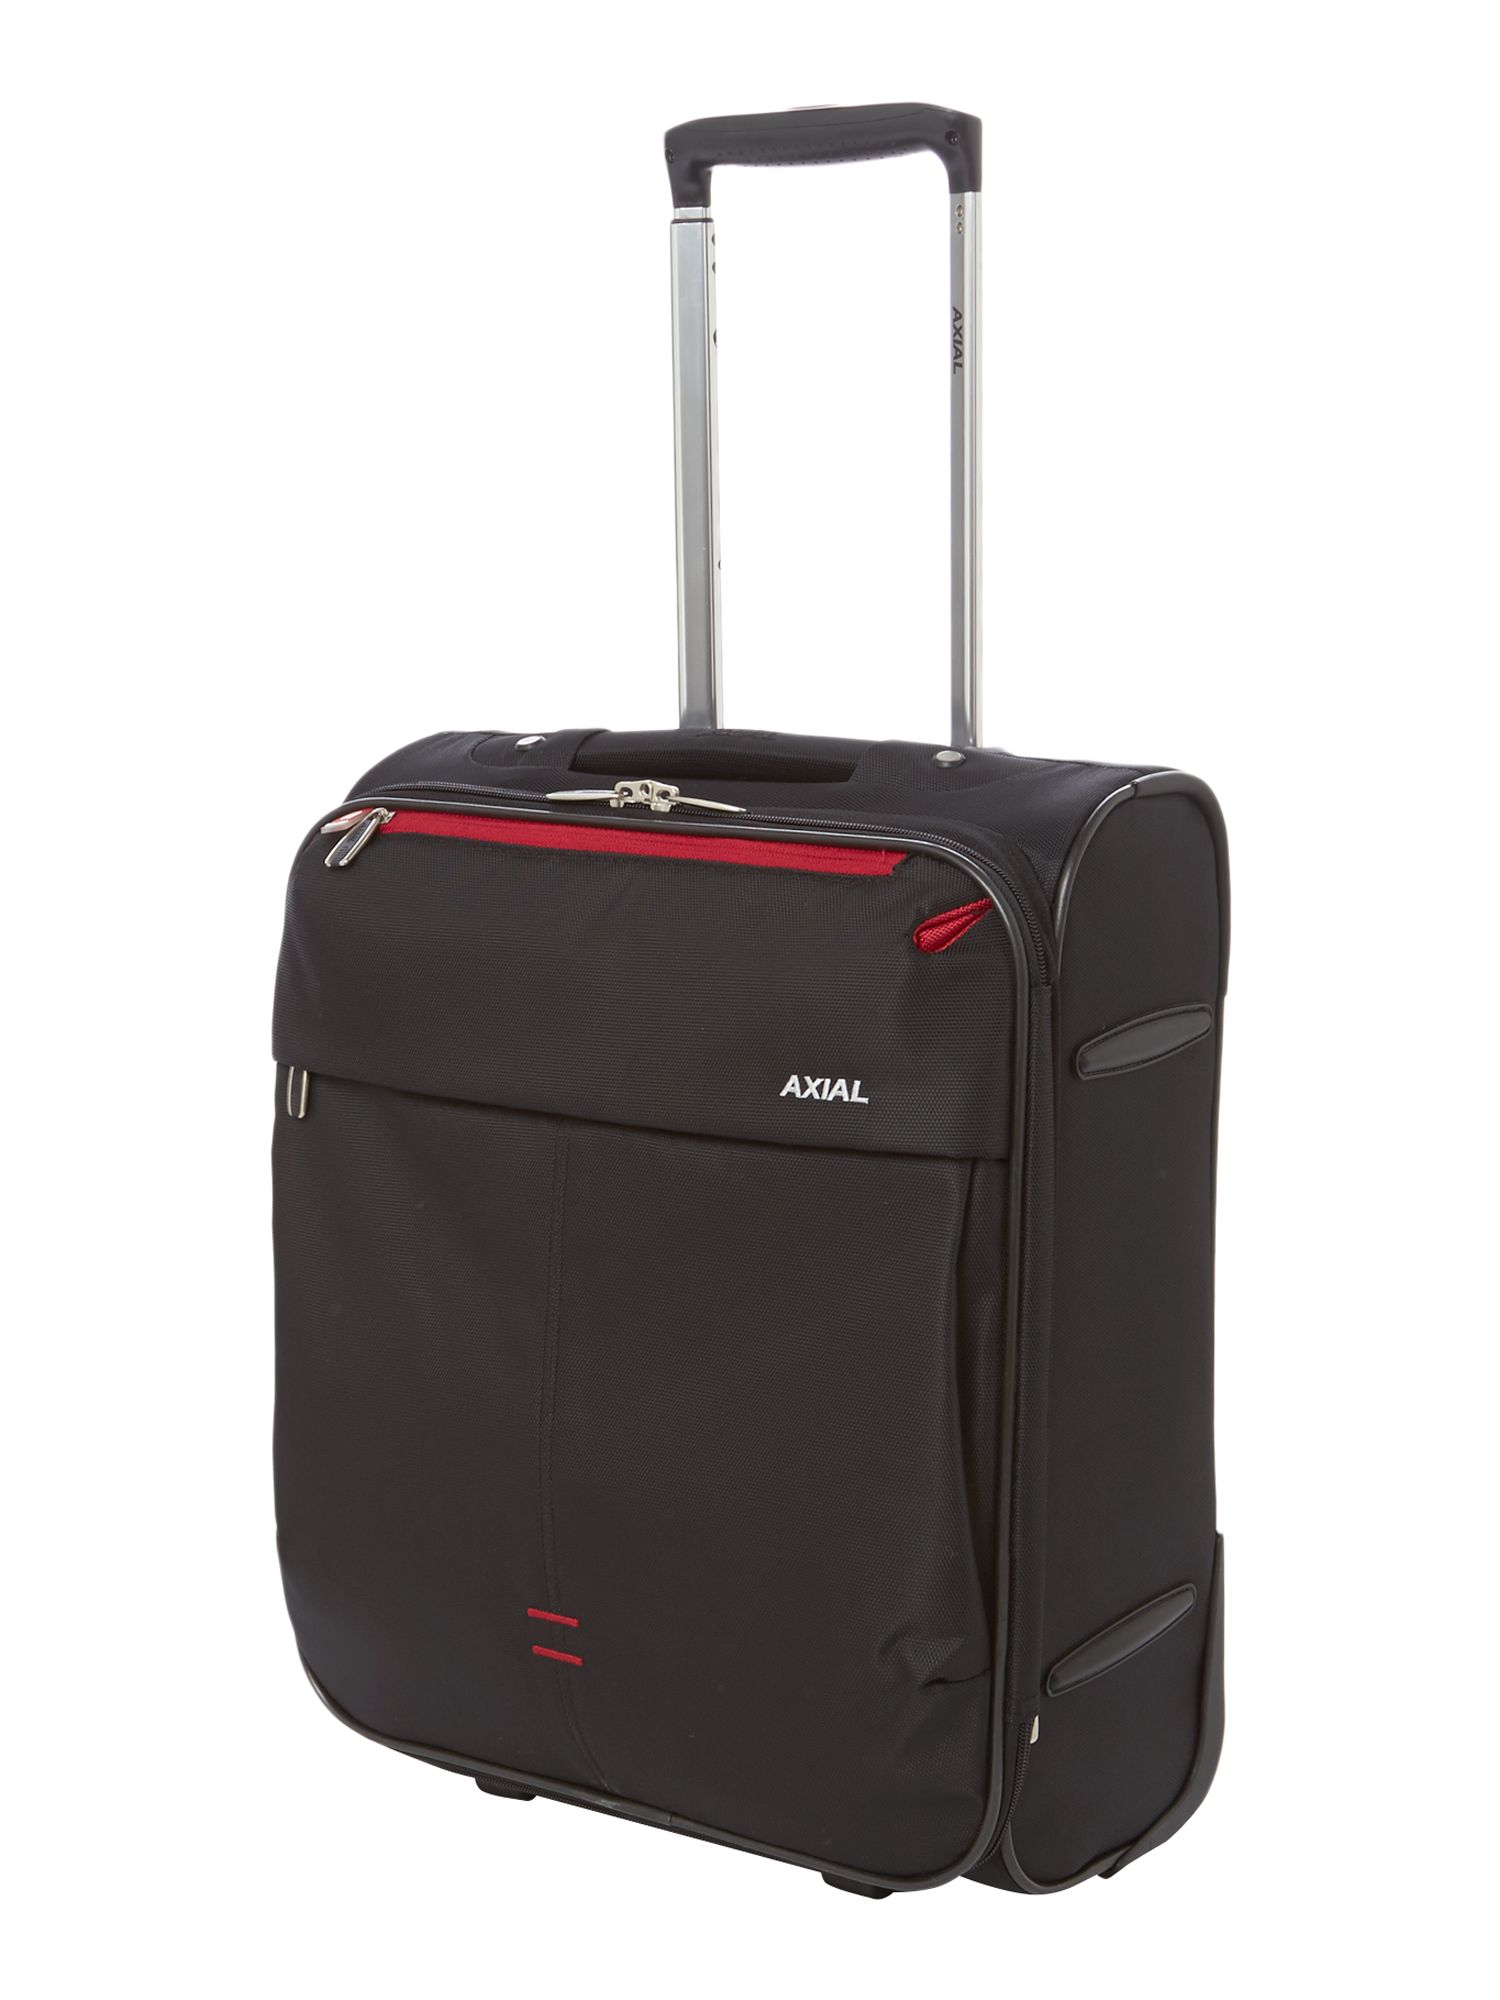 Delsey Axial black 2 wheels soft cabin suitcase